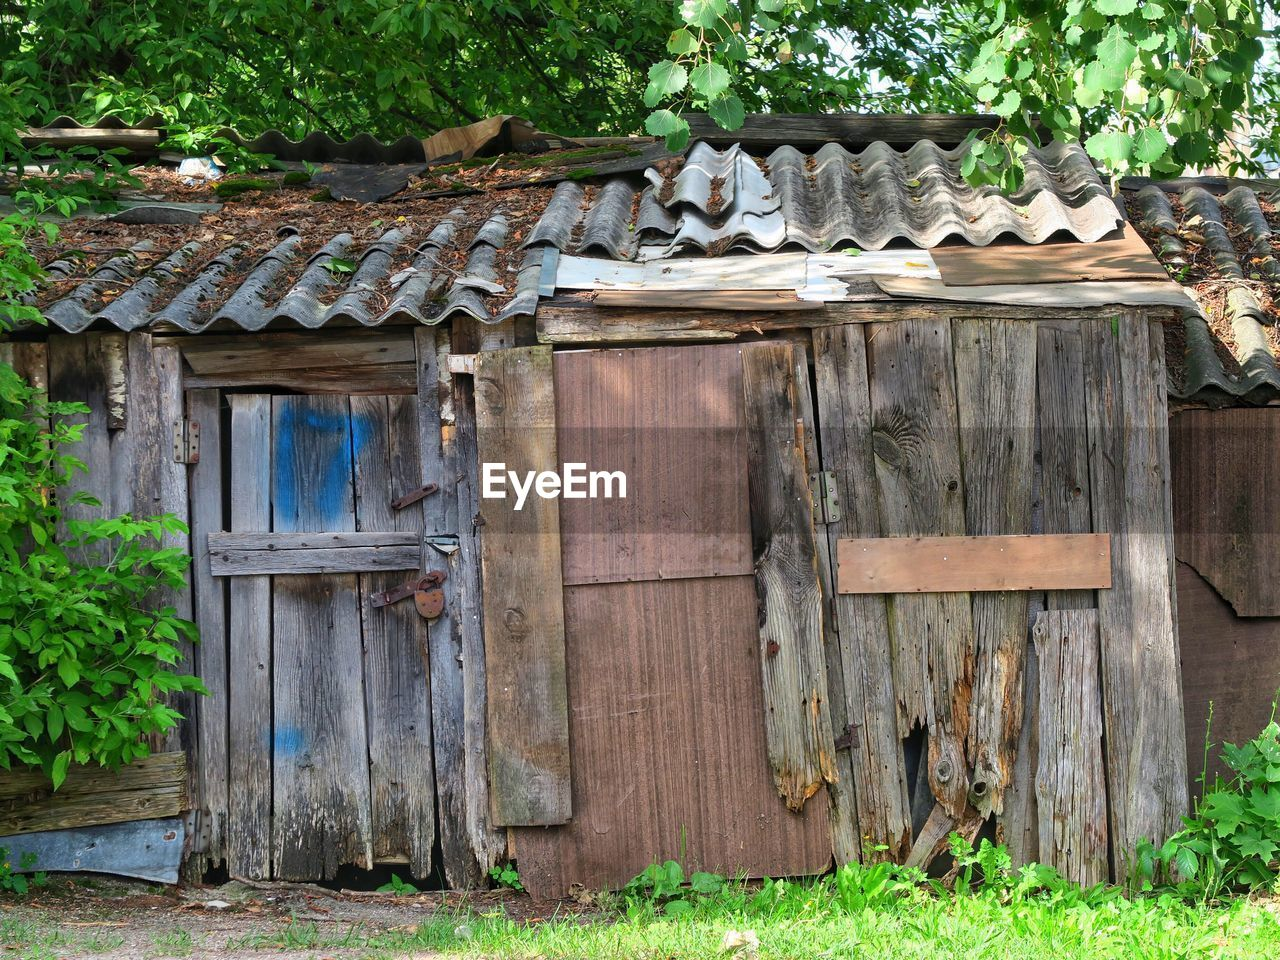 wood - material, roof, outdoors, house, built structure, day, architecture, no people, building exterior, timber, tree, nature